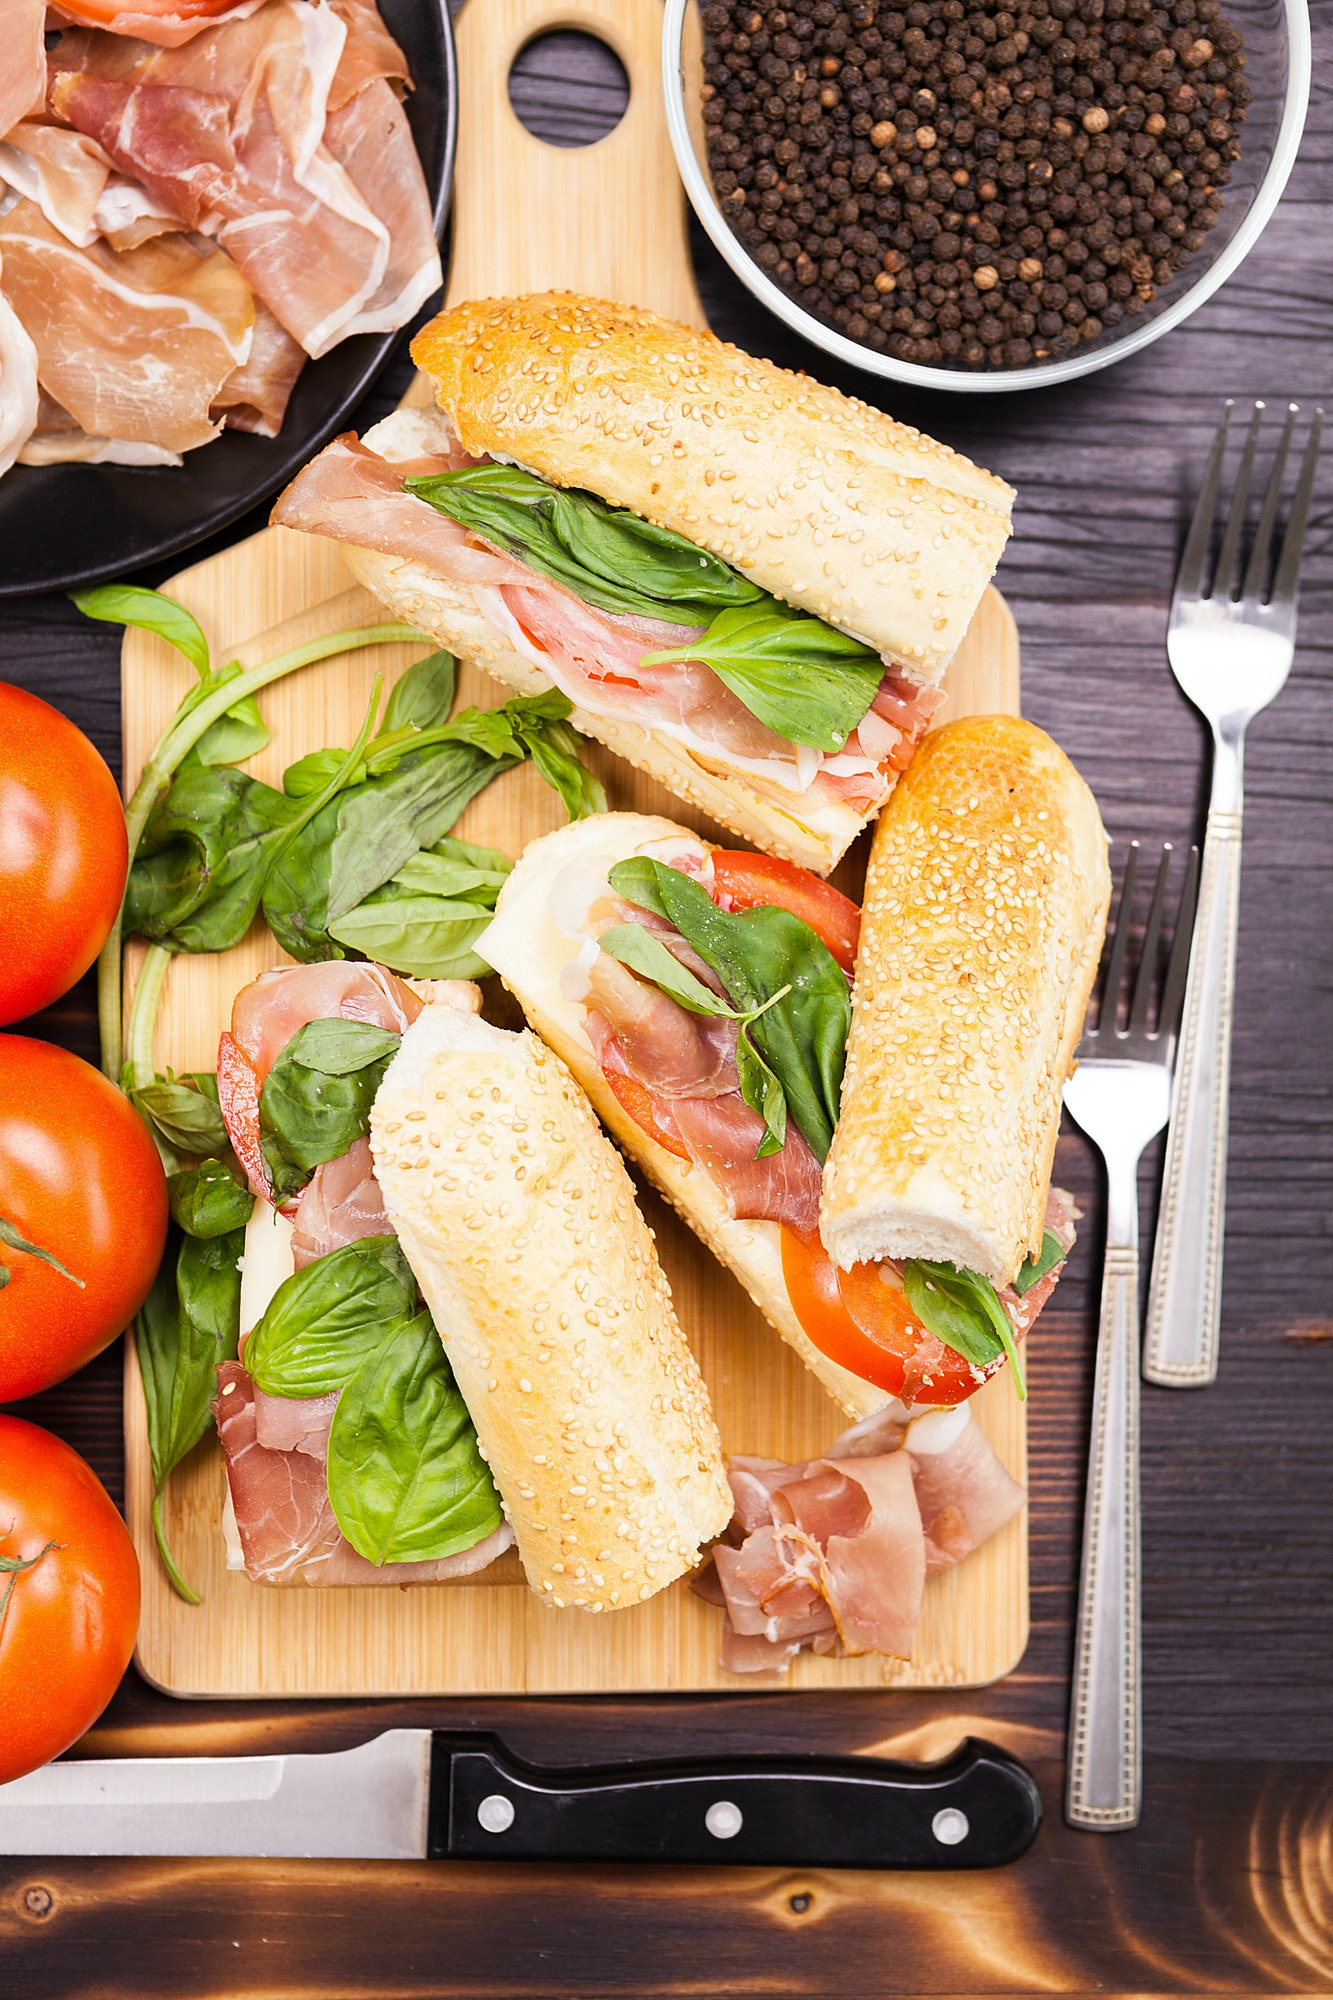 Close up on healthy sandwiches lying on wooden board